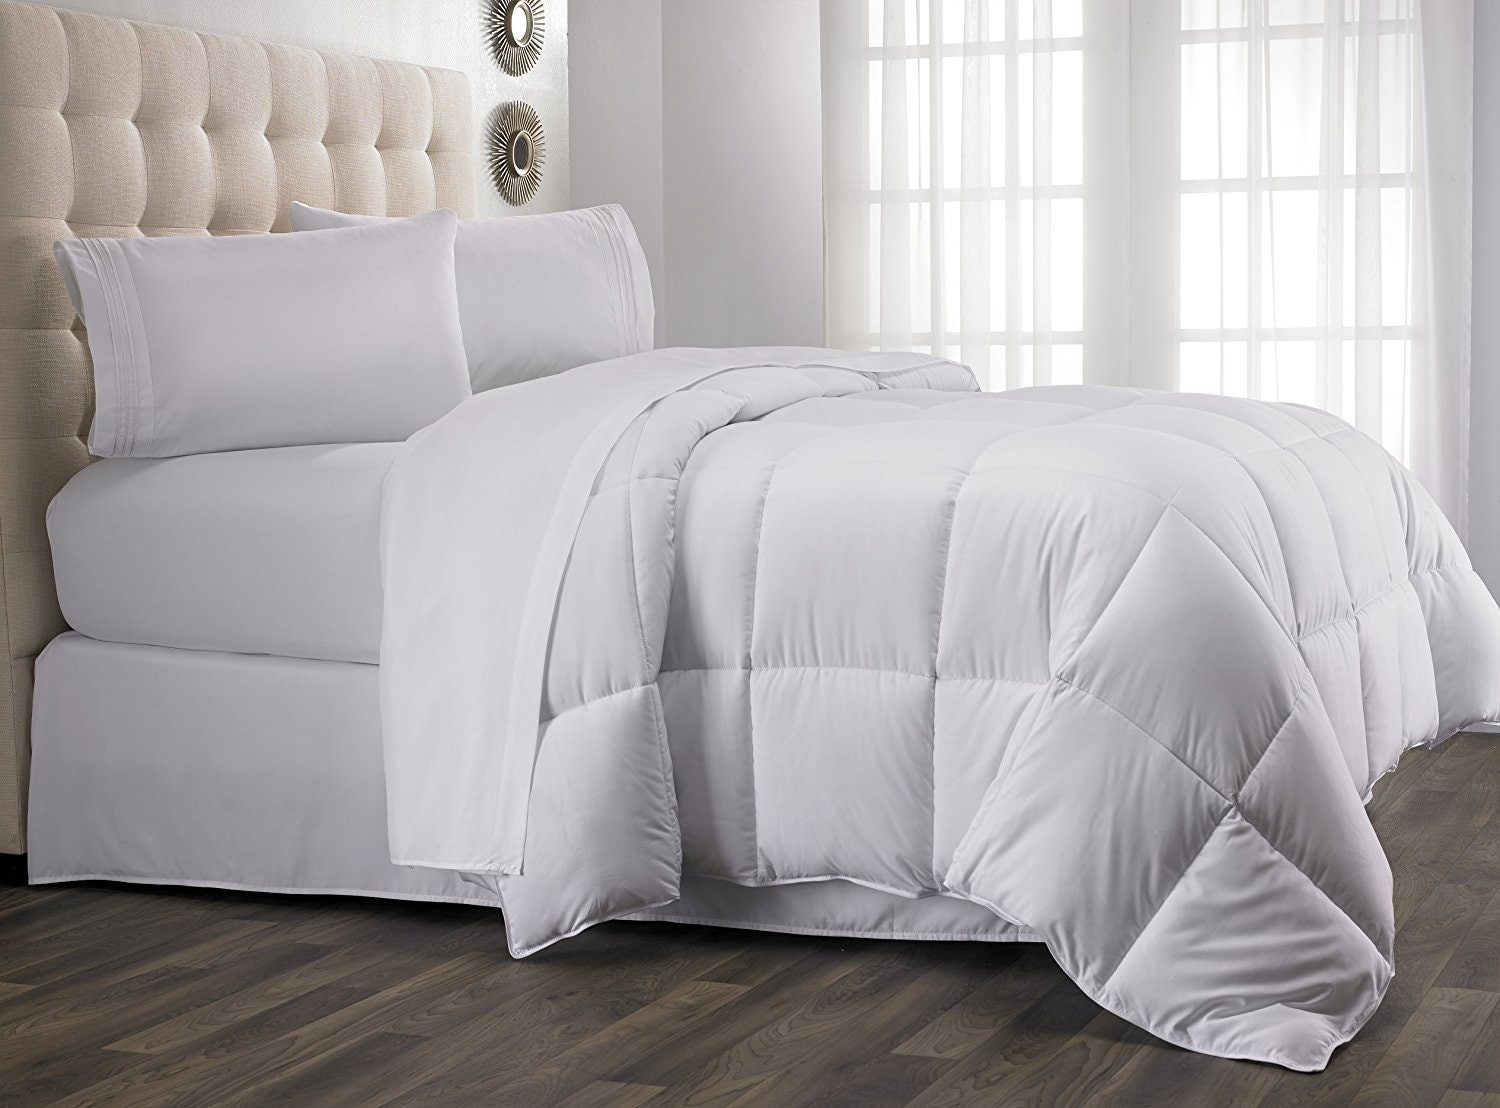 macy ways s two macys sale comforter weekly to down save p the ad